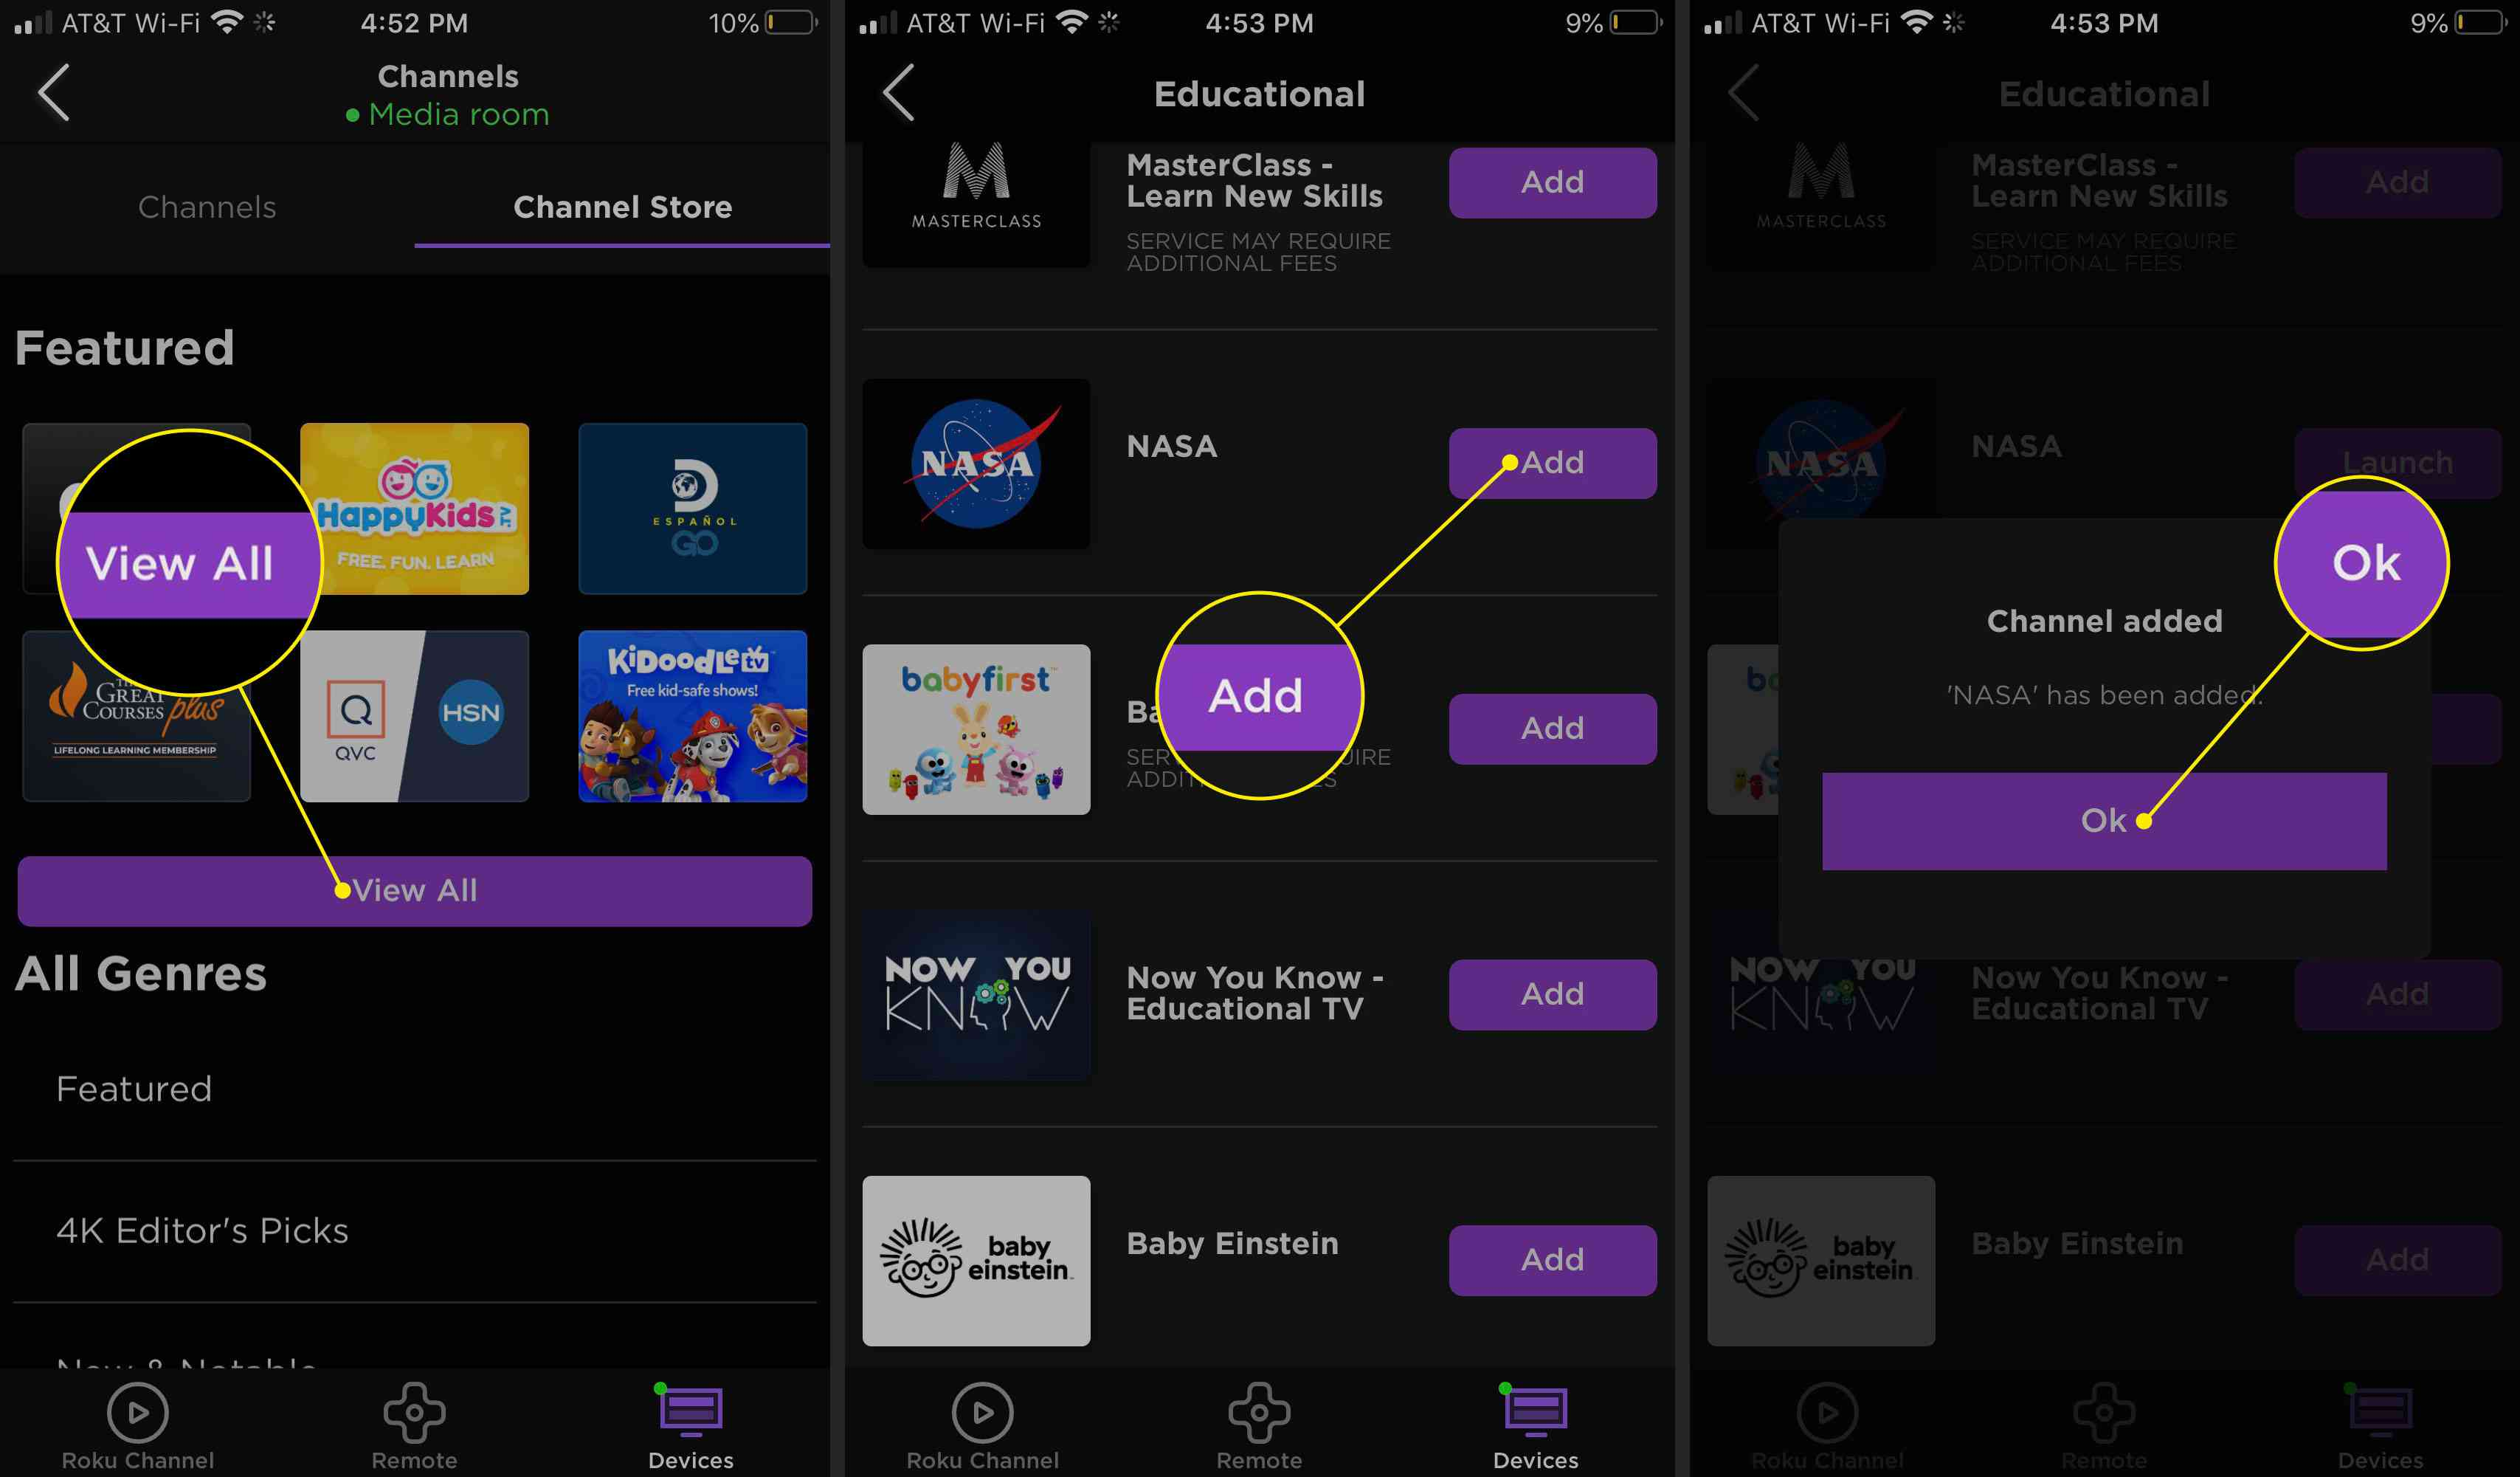 Installing a new channel in the Roku app